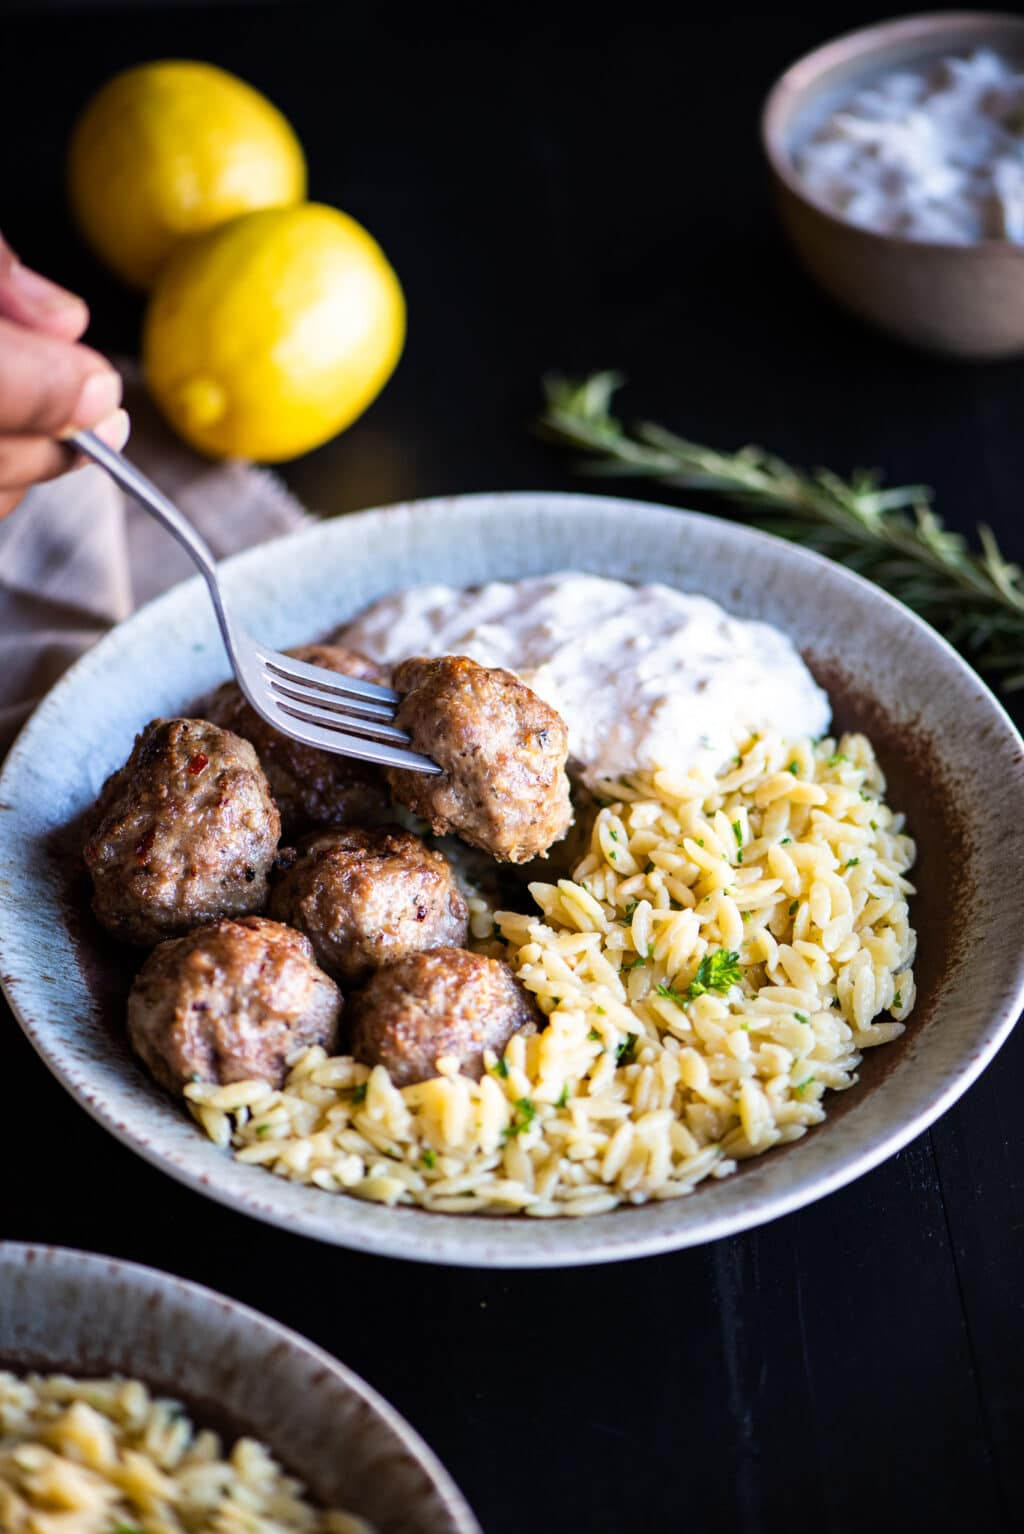 picking up a lamb meatball with a fork